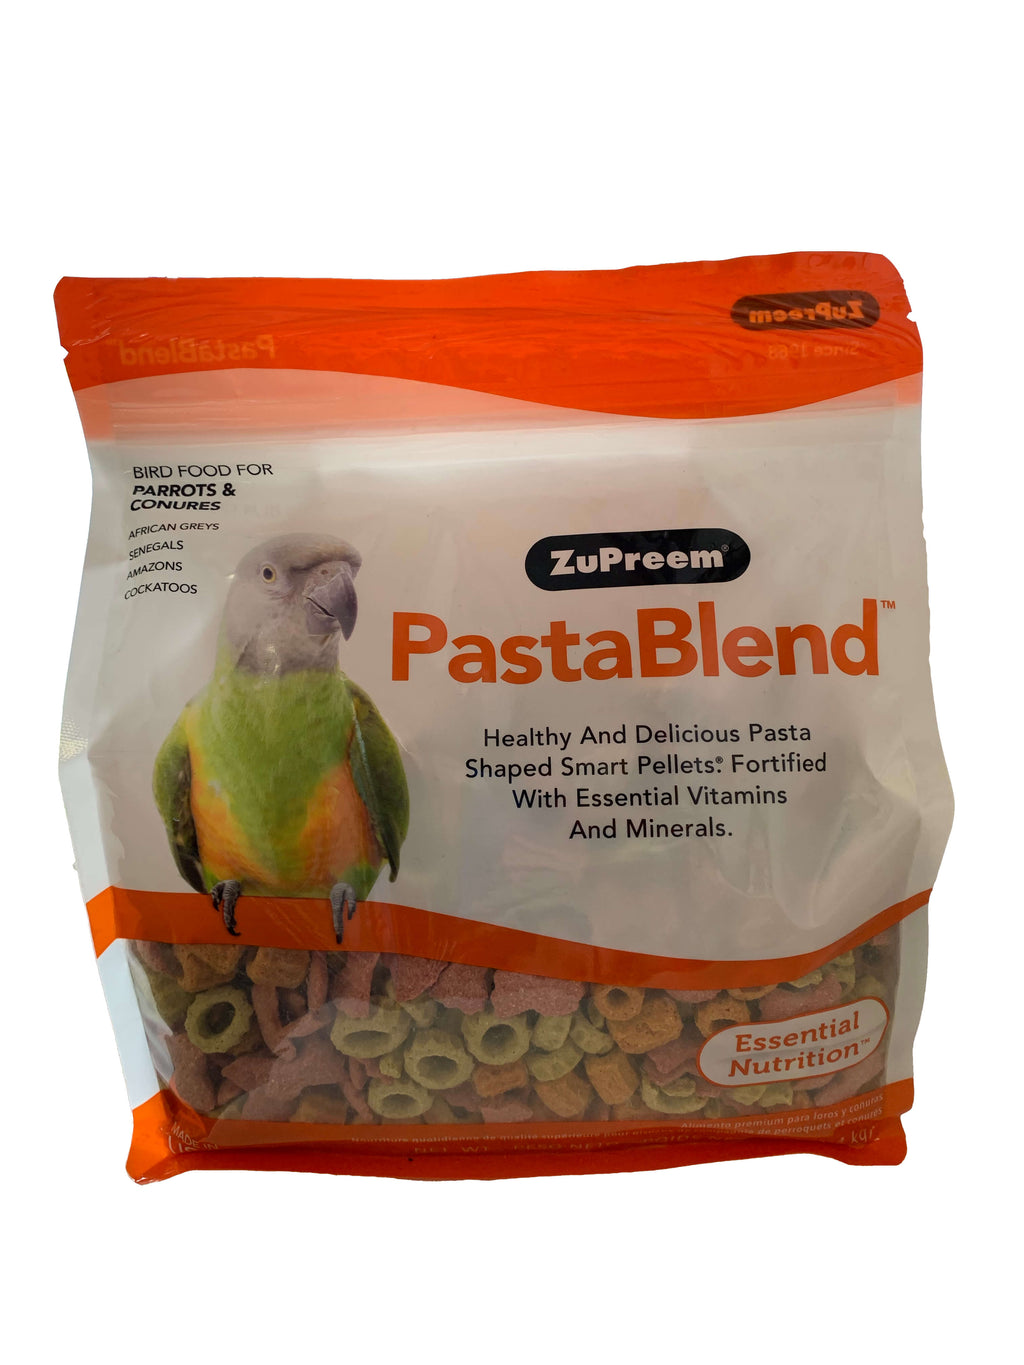 ZuPreem PastaBlend - Feathered Follies